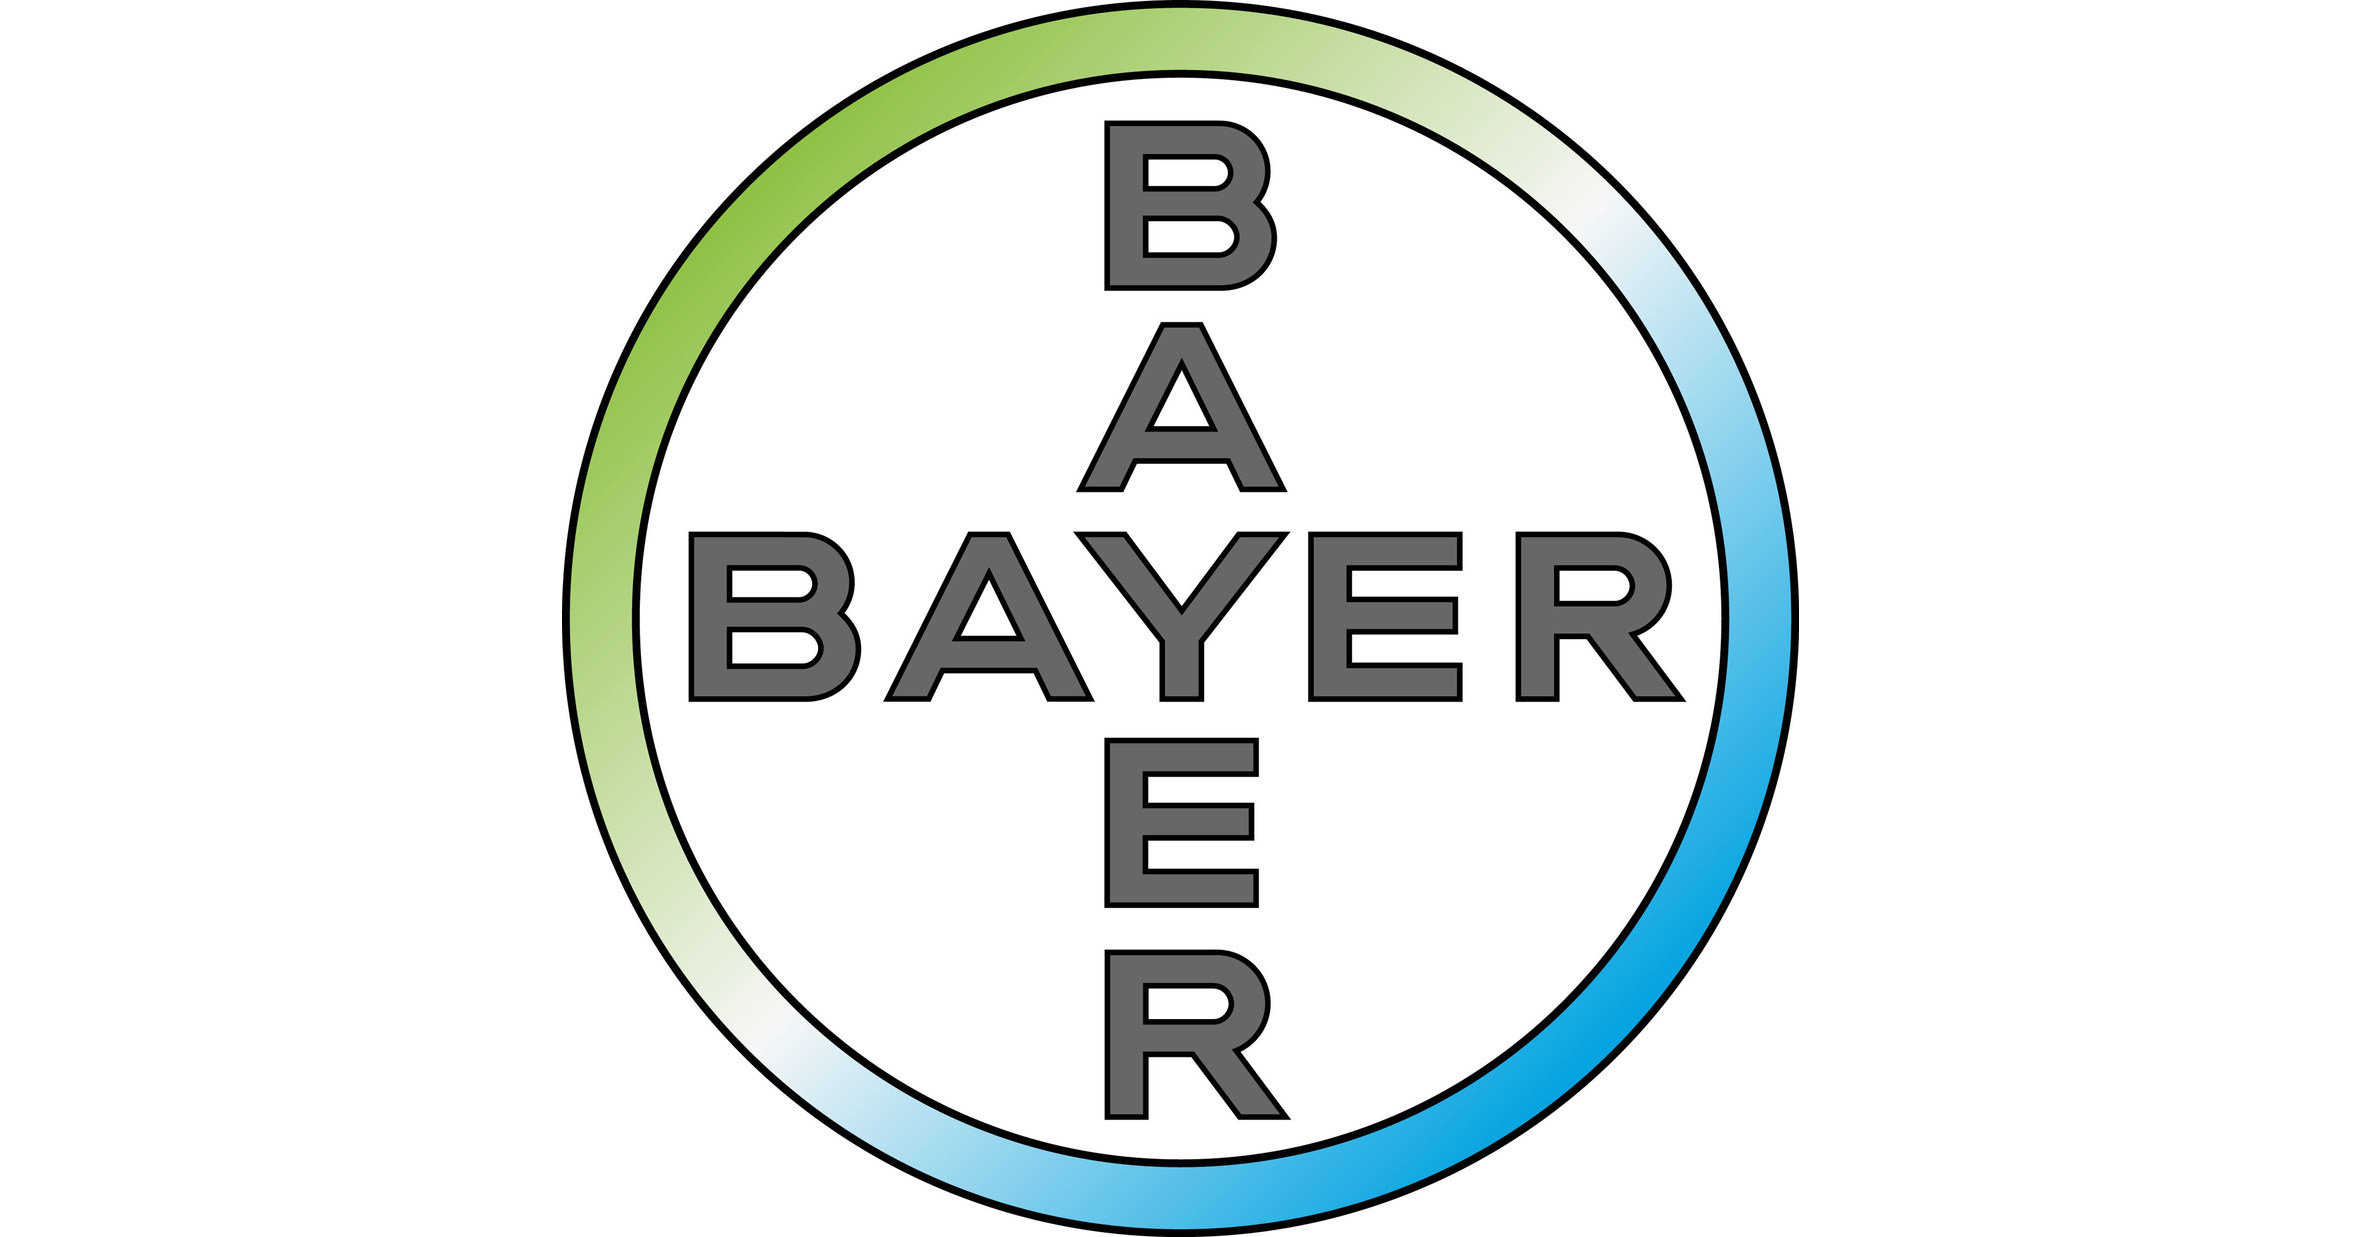 Thanks to our sponsor: Bayer